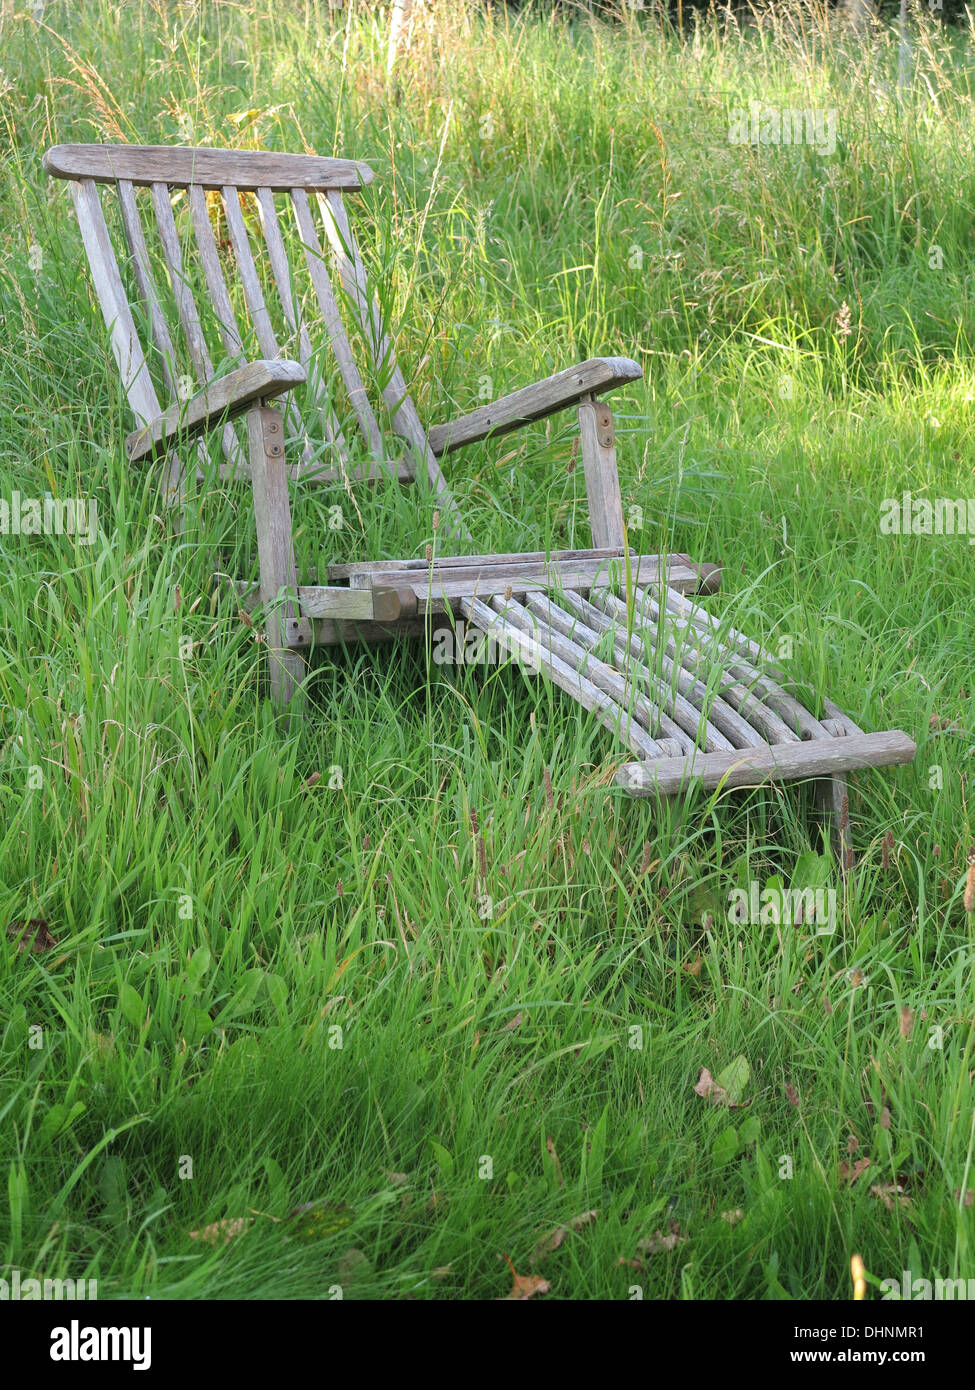 forgotten chair - Stock Image